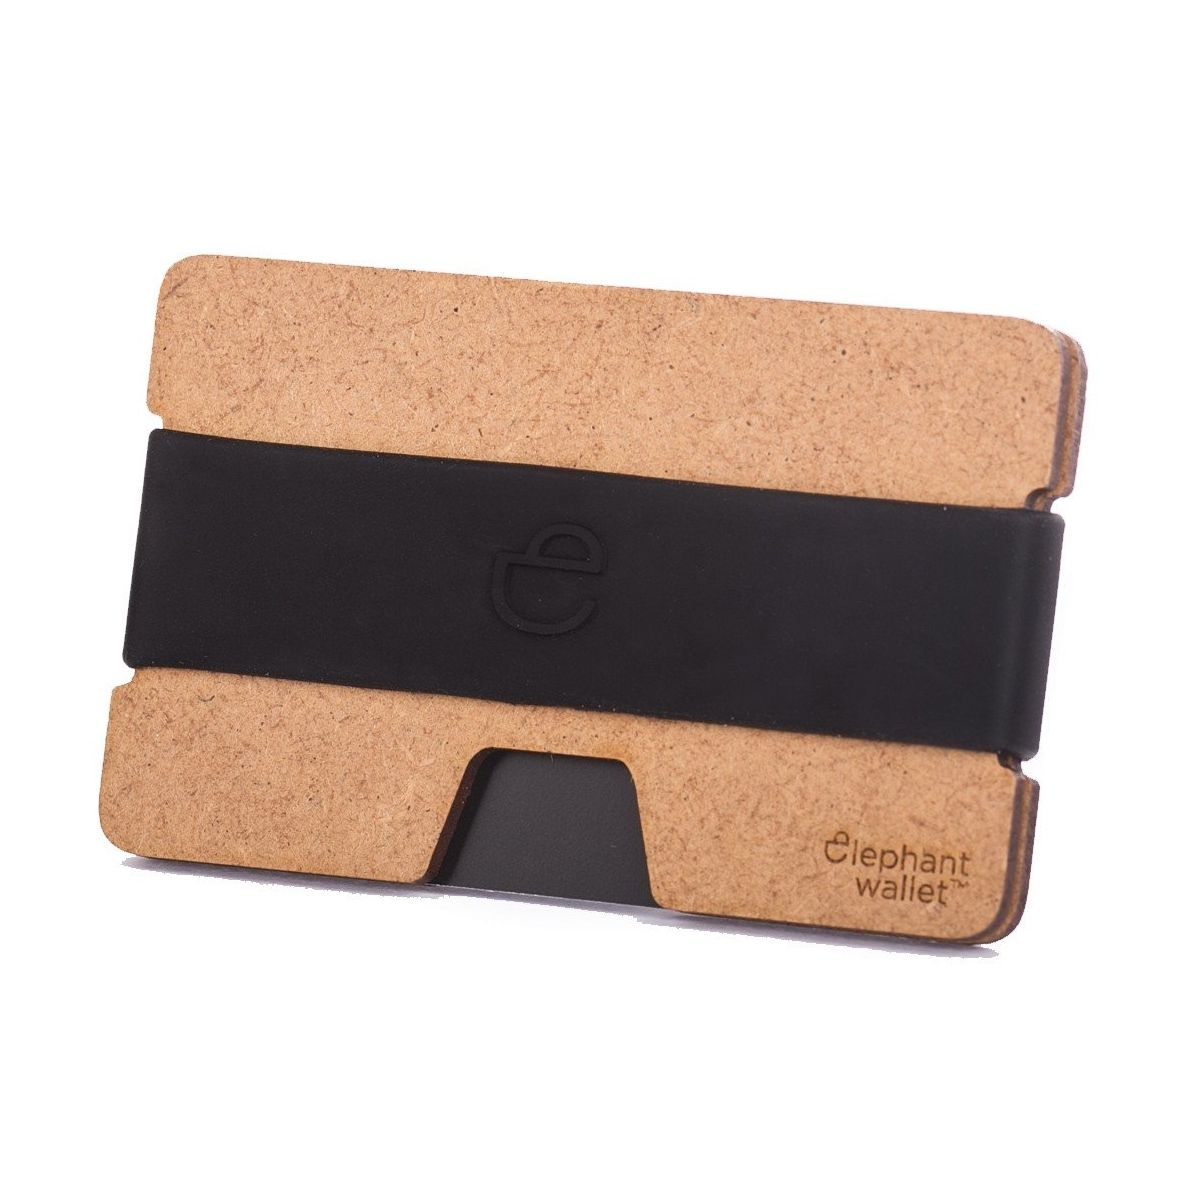 elephant Minimalist Wood Wallet - Wood/Black